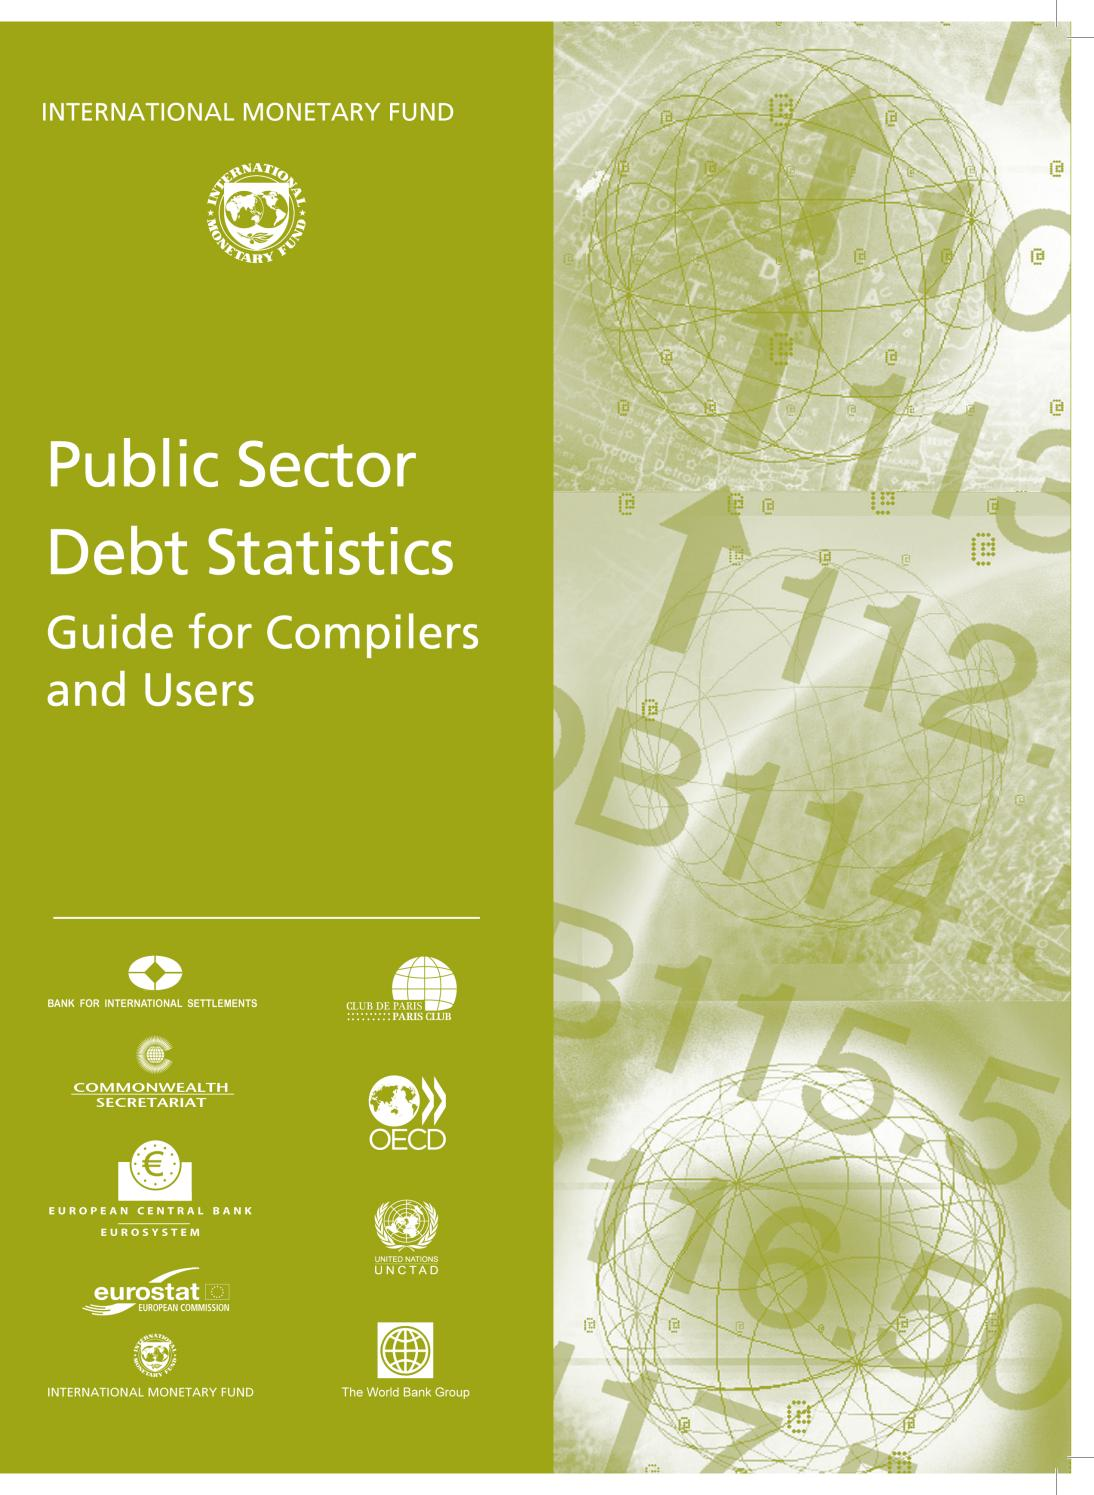 public sector debt statistics guide for compilers and users